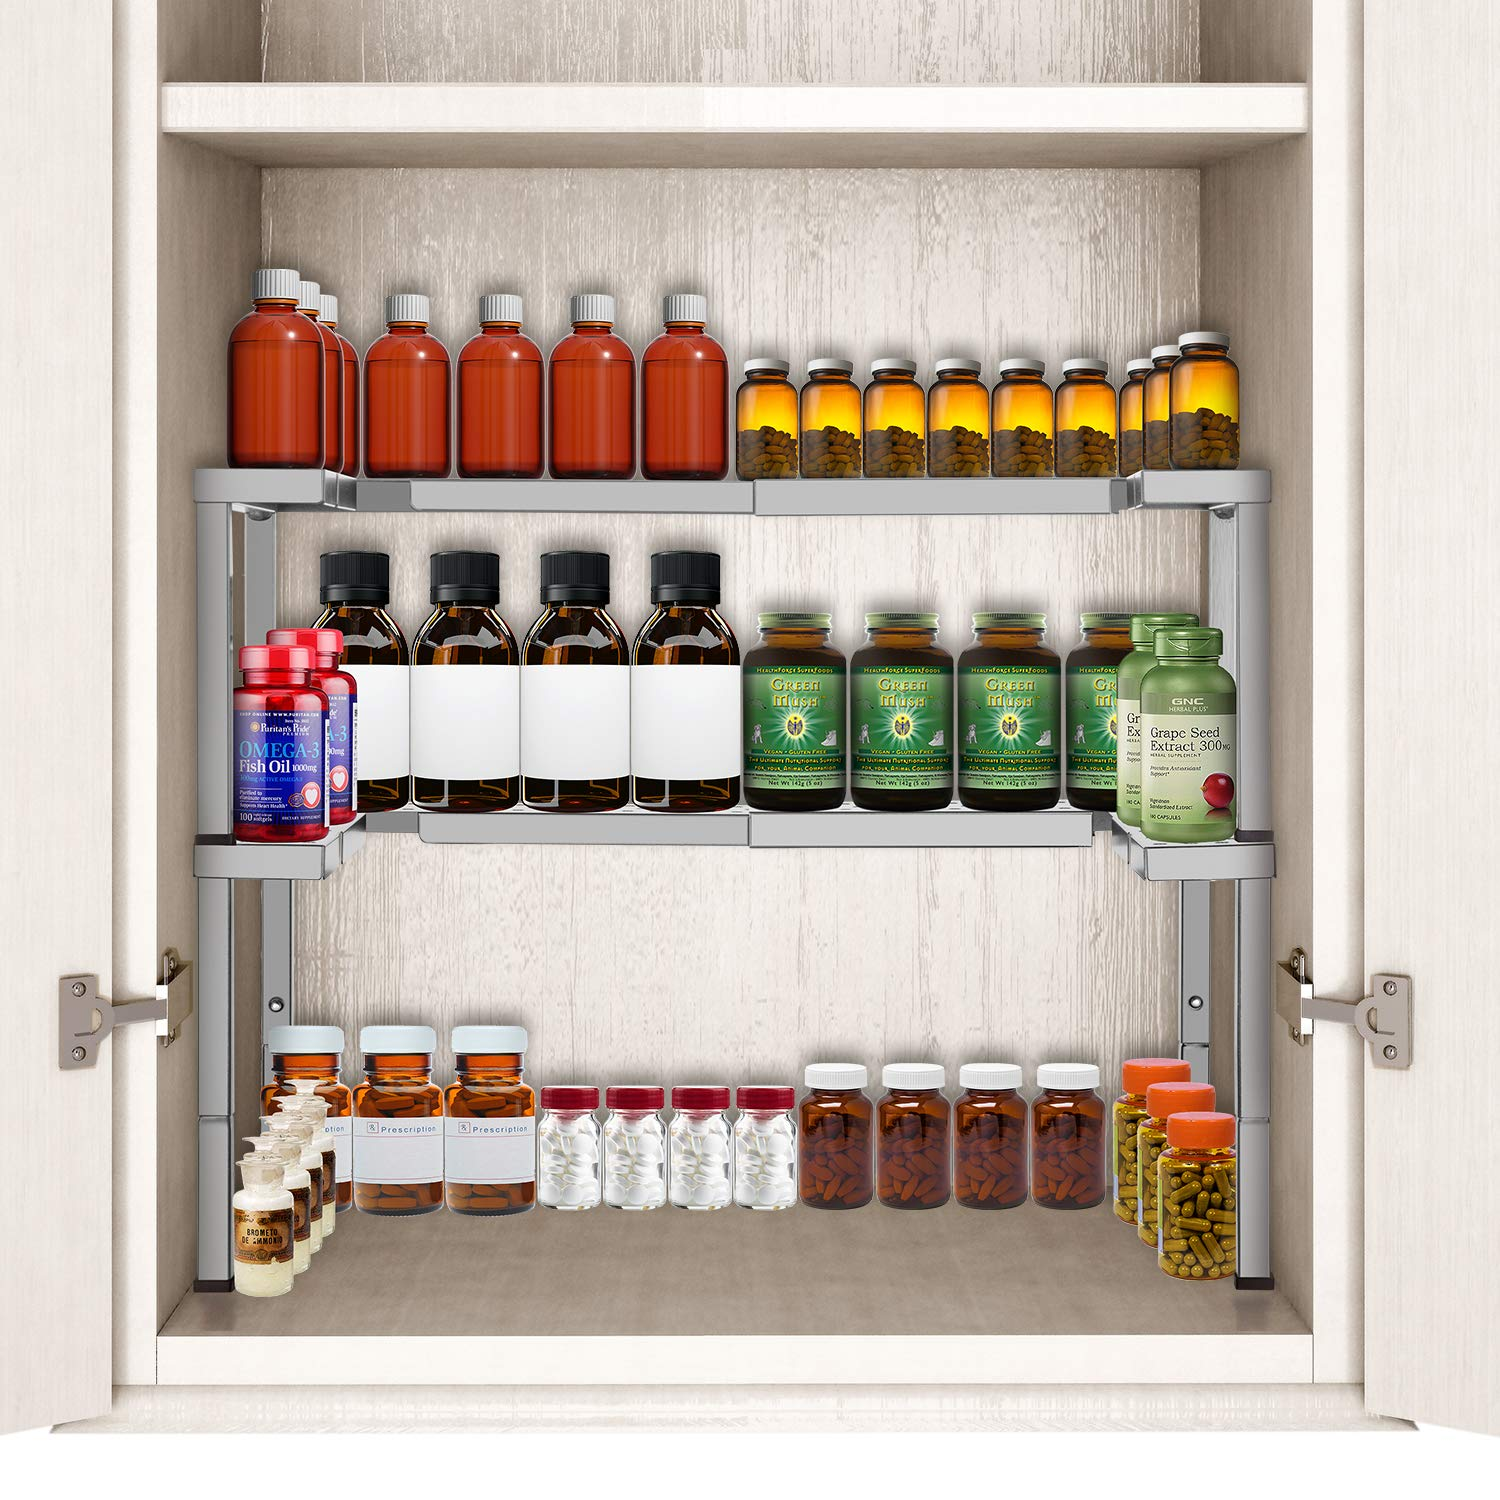 Bextsware 2 Pack Expandable and Stackable Spice Rack Organizer for Cabinet & Pantry, Adjustable Height Shelf for Spices, Medicine, Nail Polish, Metal Bronze (Silver) by Bextsware